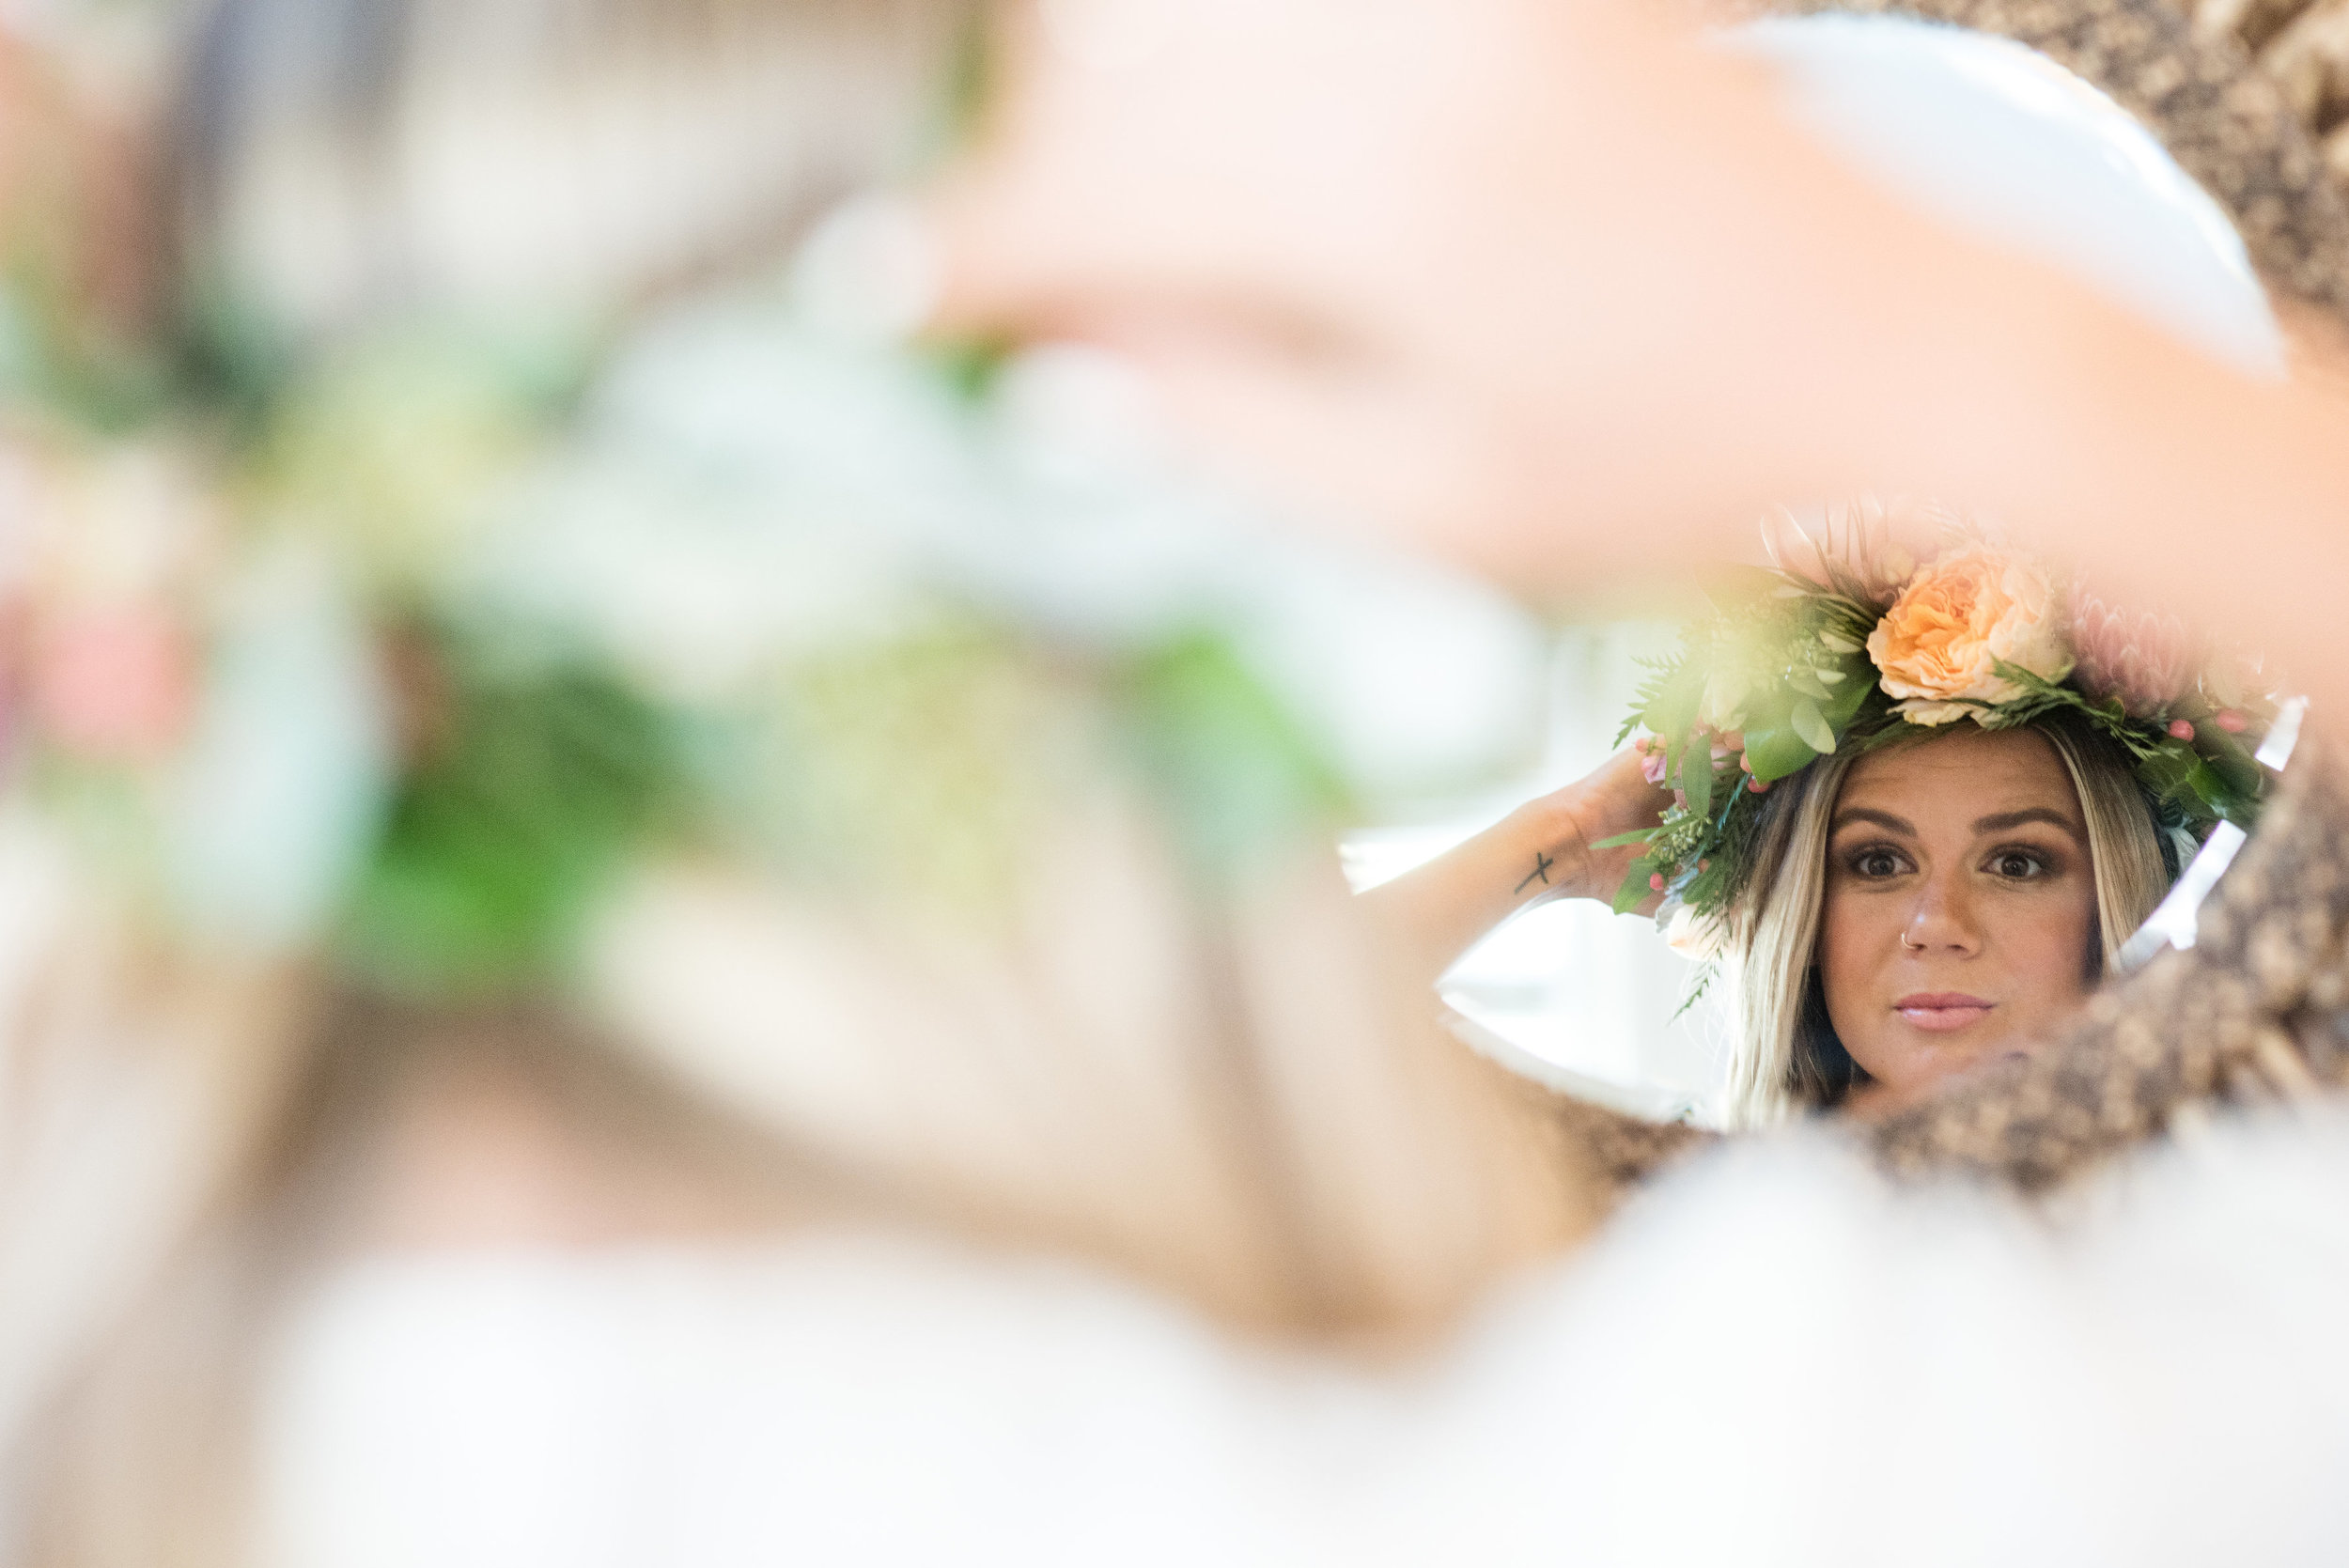 chelsay+landon-wedding-Boho bride-Orange County-thevanitybelle.com